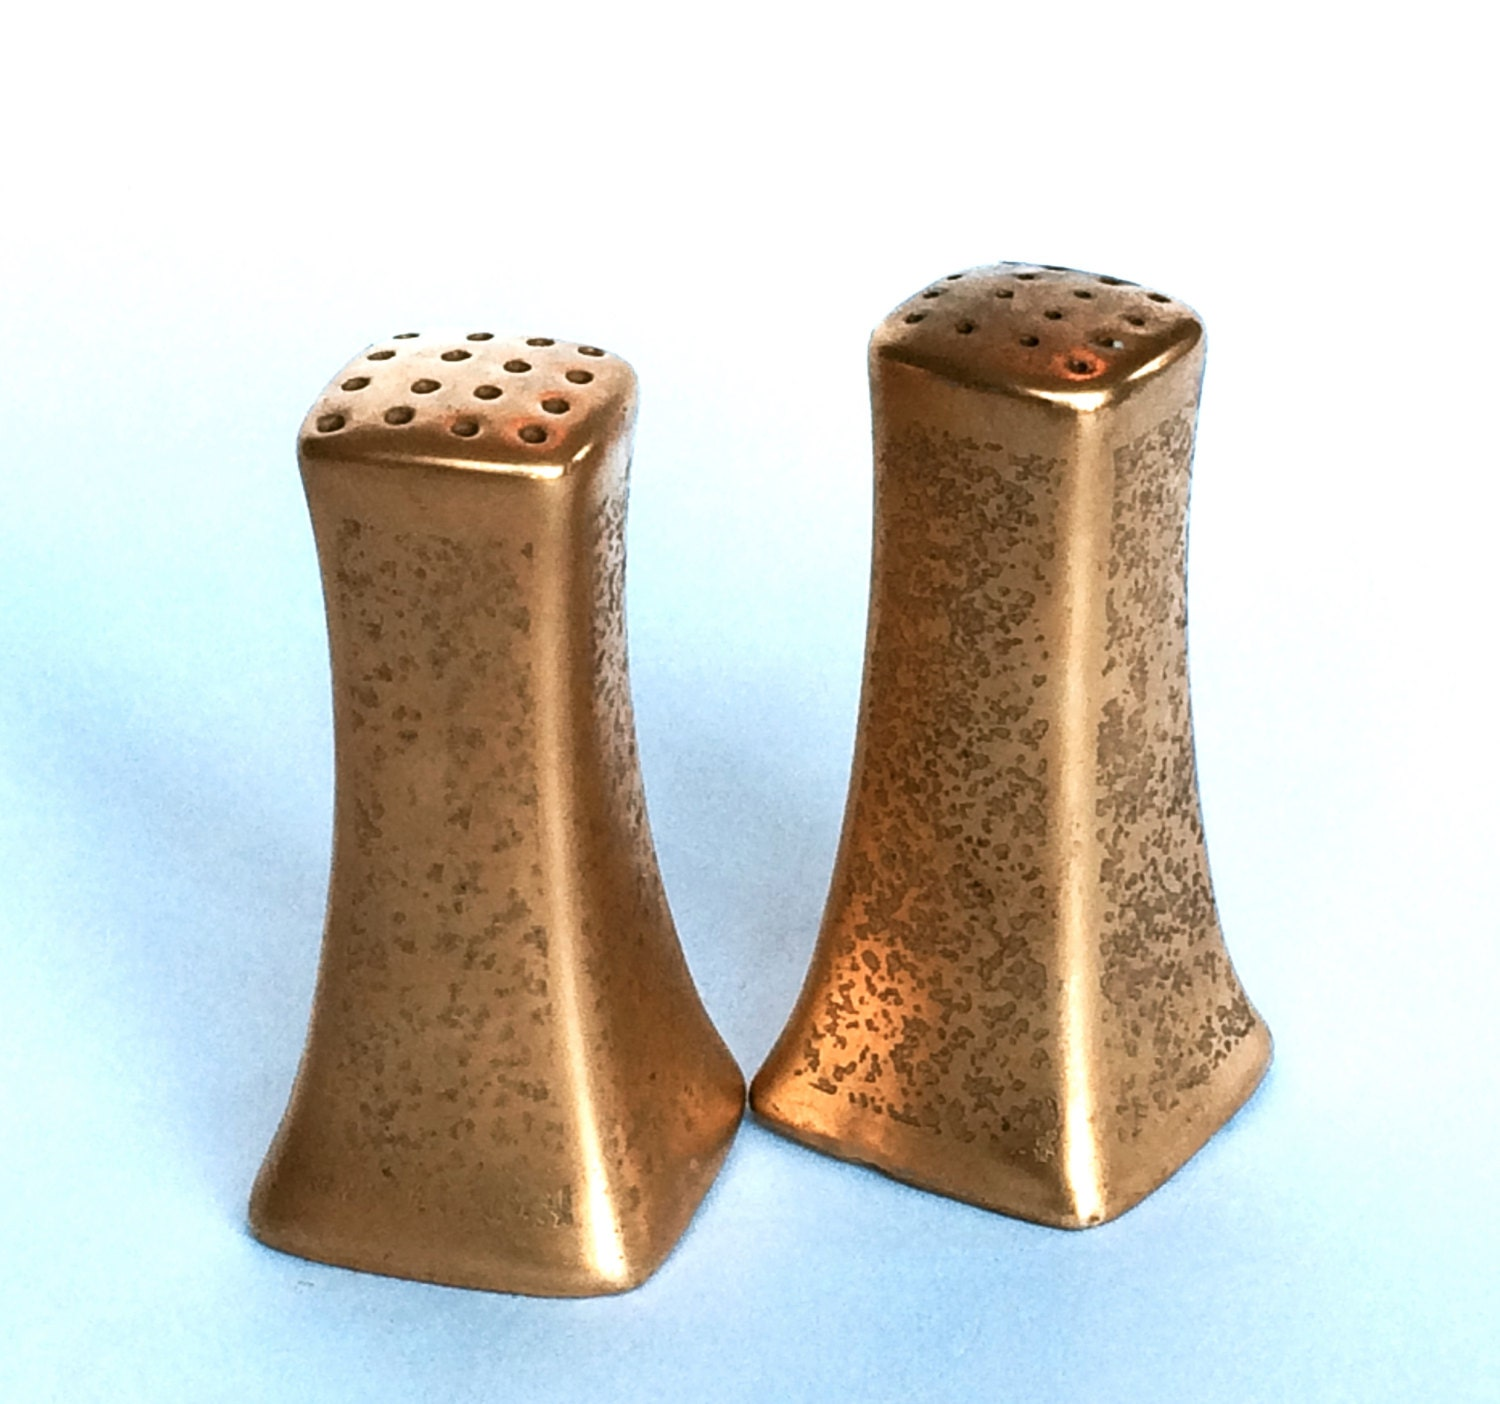 Art Deco Gold Salt And Pepper Shakers By Themarketbybpd On